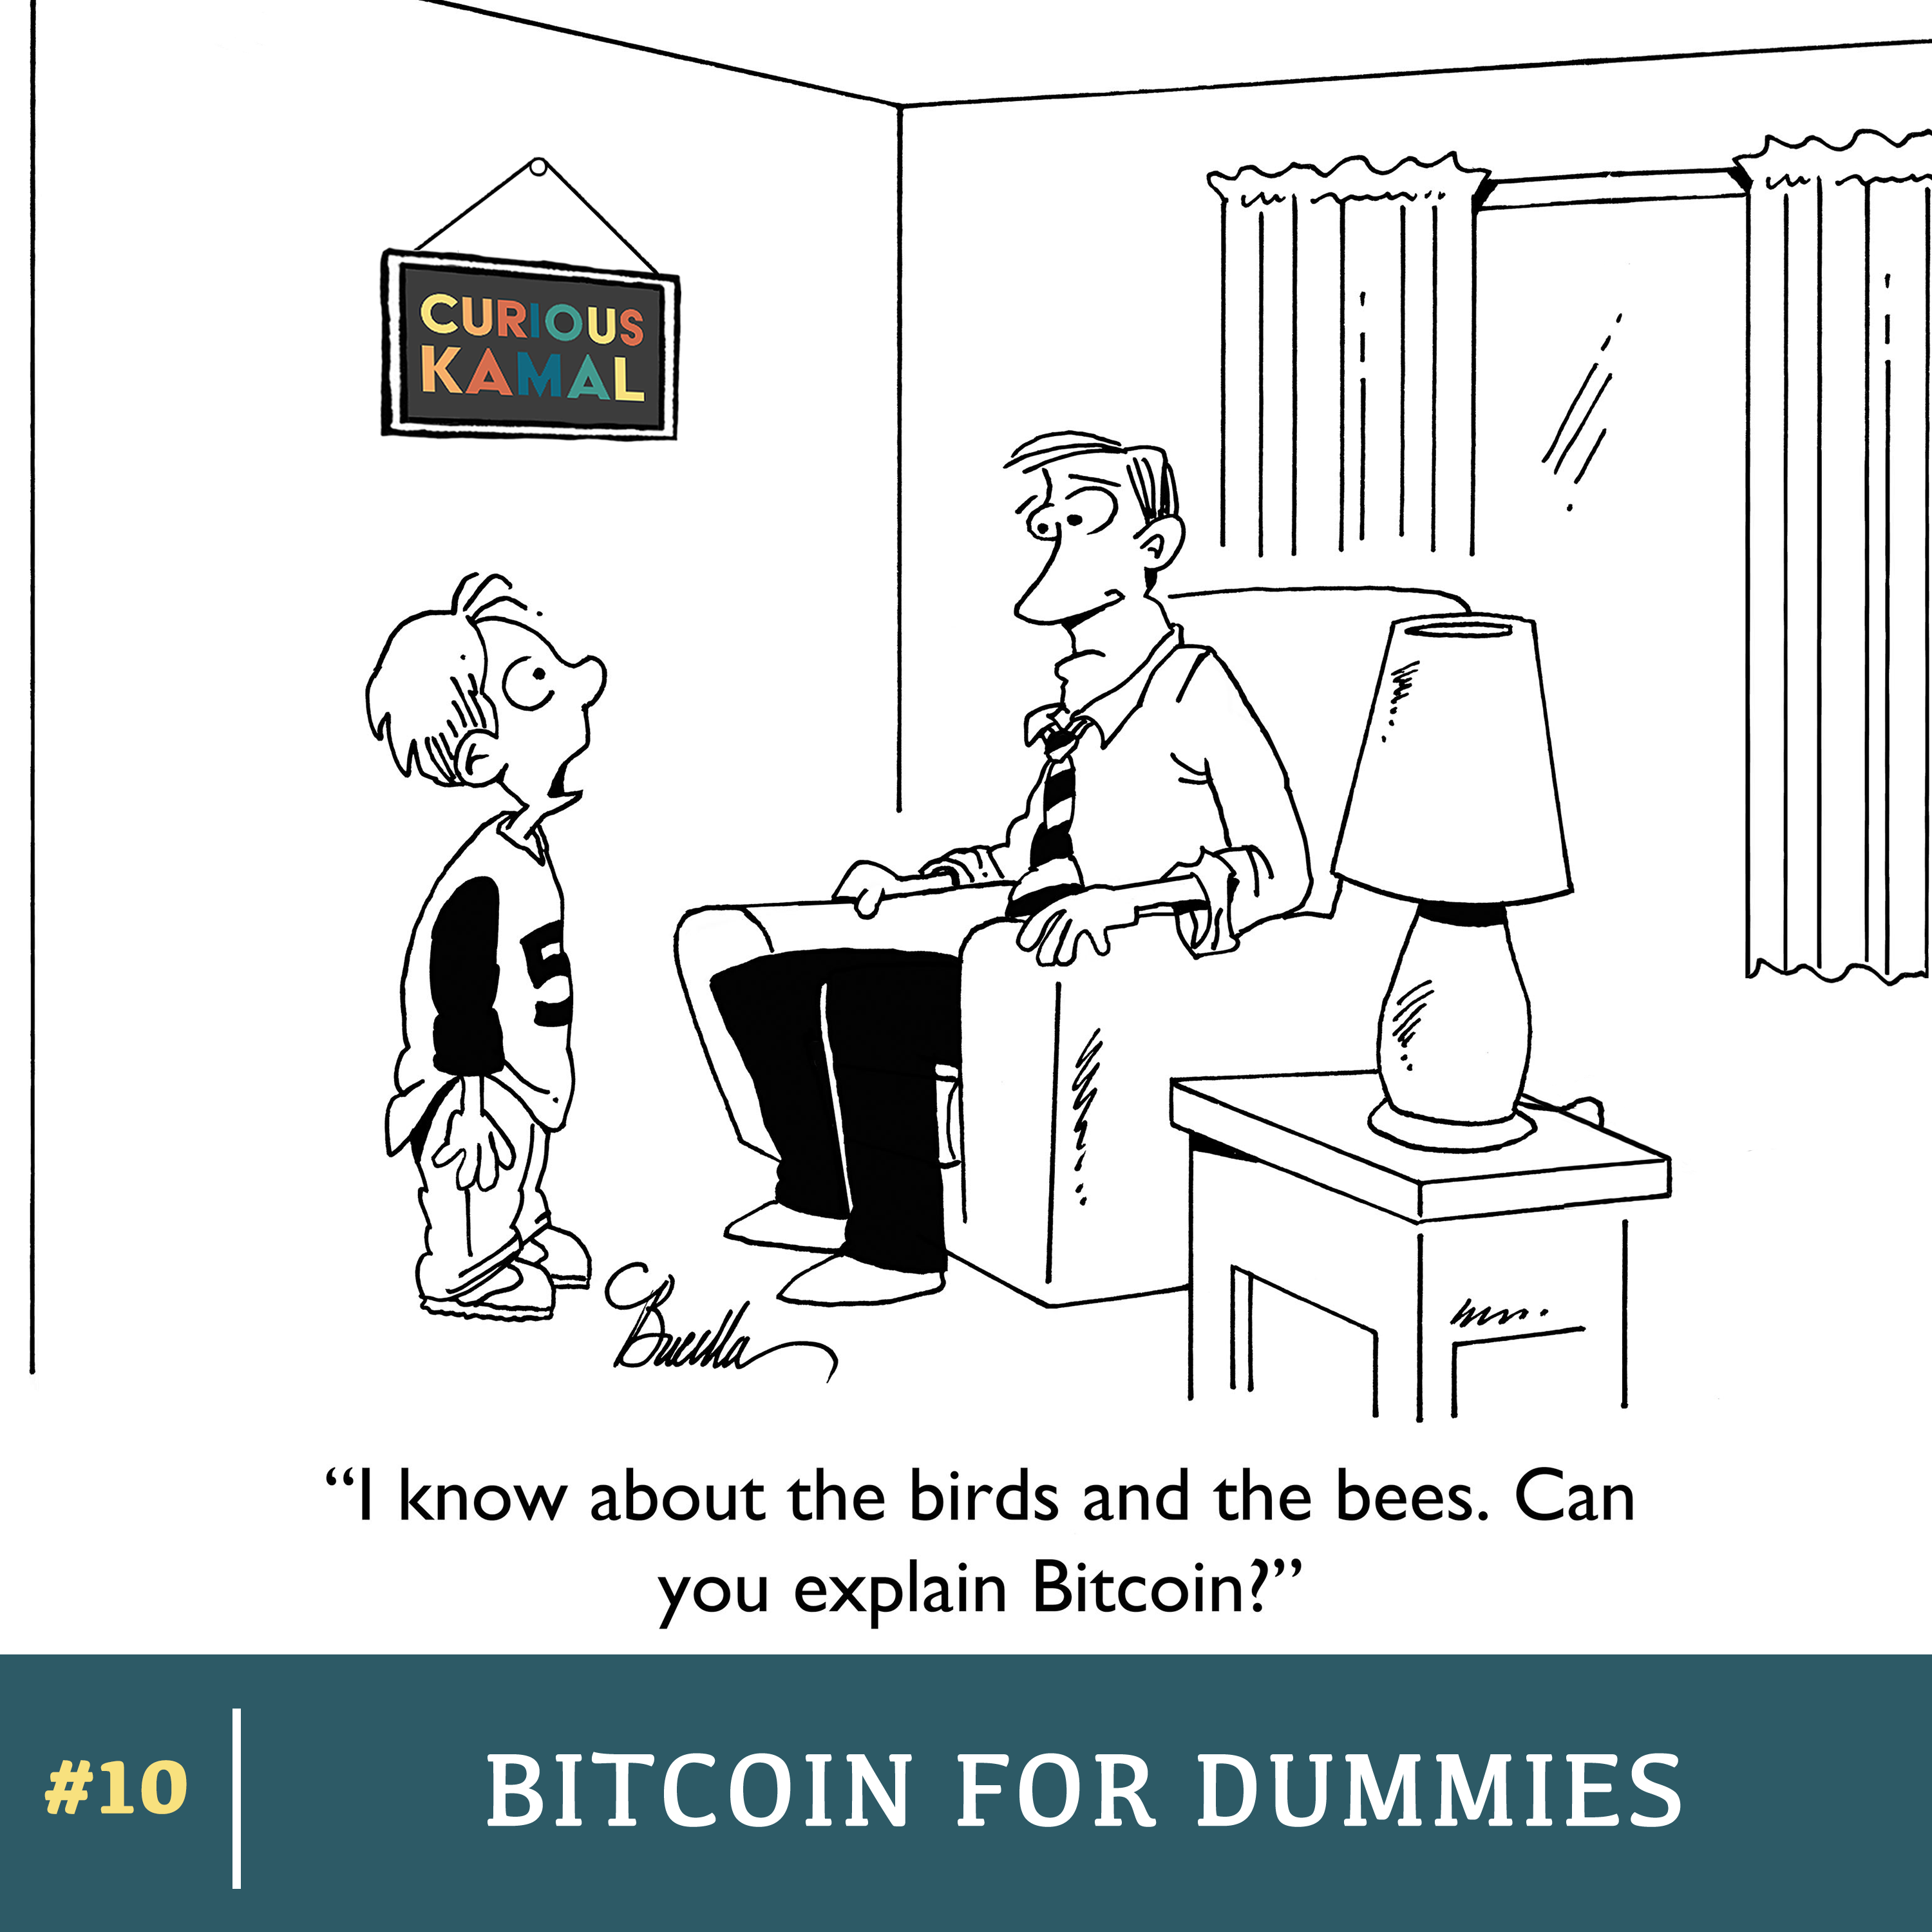 Bitcoins for dummies explained synonym indian domestic cricket betting adda